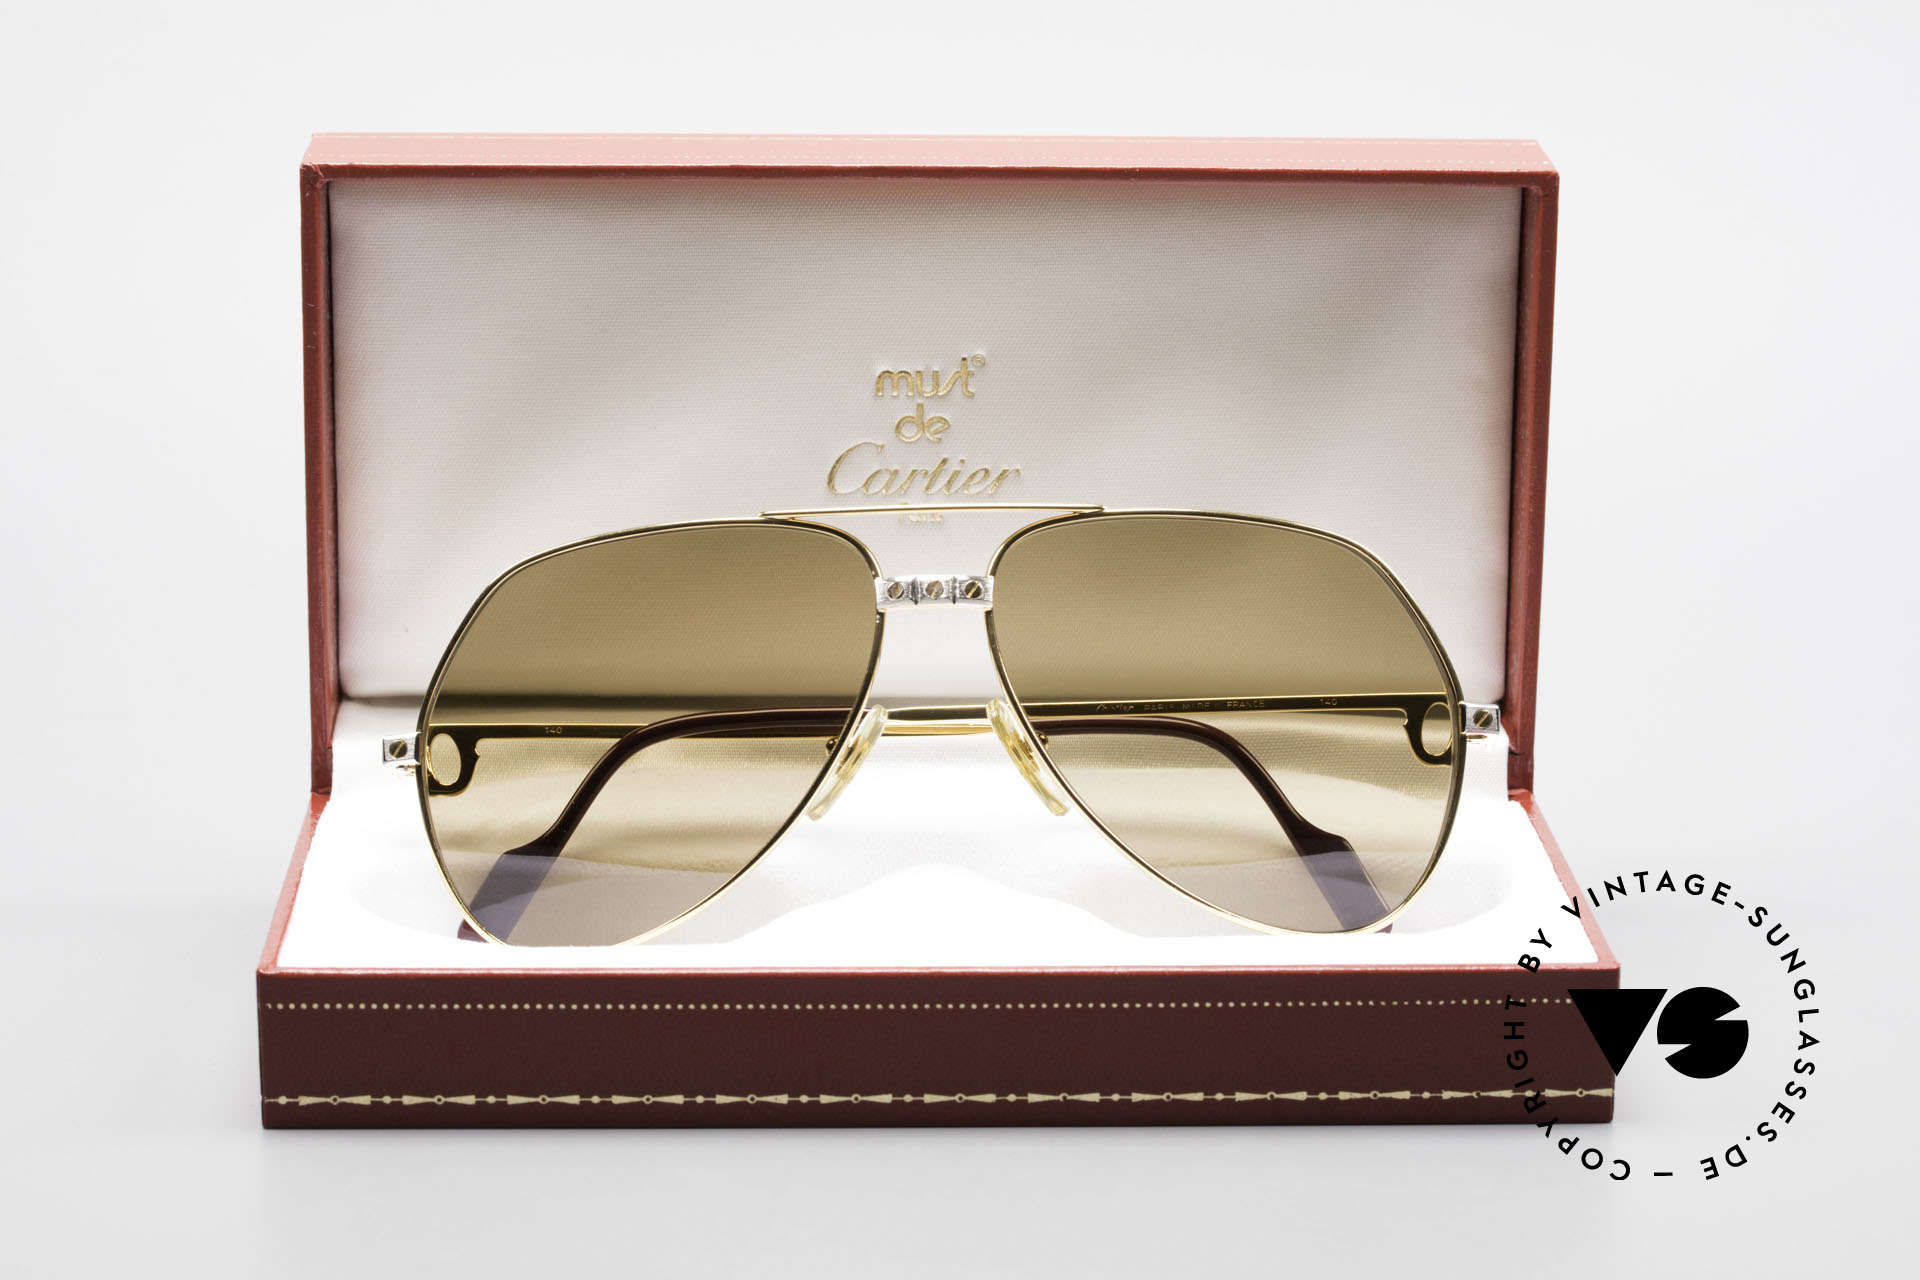 Cartier Vendome Santos - L Mystic Cartier Mineral Lenses, unworn, new old stock with orig. packing, collector's item, Made for Men